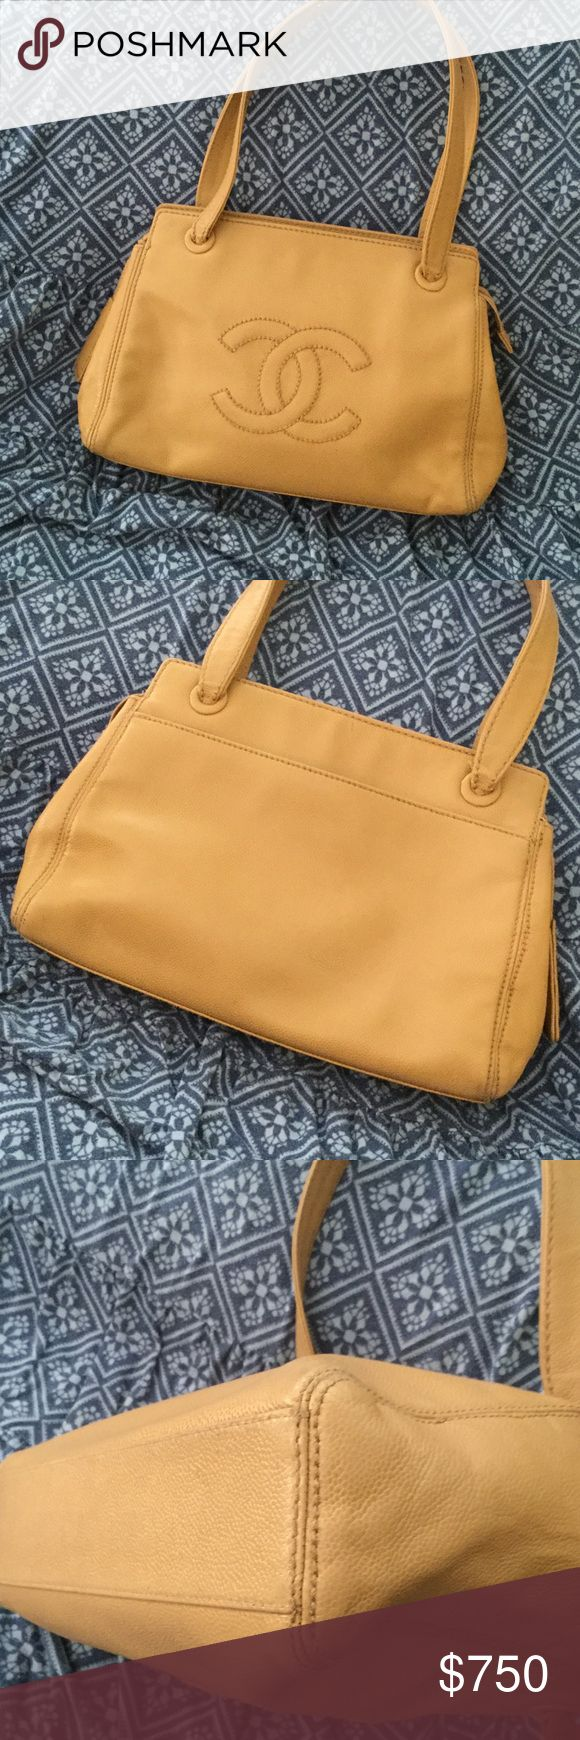 Authentic Chanel shoulder bag🎉SALE🎉 Beautiful tan leather Chanel bag. Very good preowned condition. one large outside pocket and one large inside zipper pocket.  main compartment has zip closure. Minor scuffing on corners as seen in picture and under shoulder straps. Really comfortable and perfect size and shoulder strap drop of 9 to 10 inches for every day use. From a smoke free and pet free home. No holds, no trades CHANEL Bags Shoulder Bags